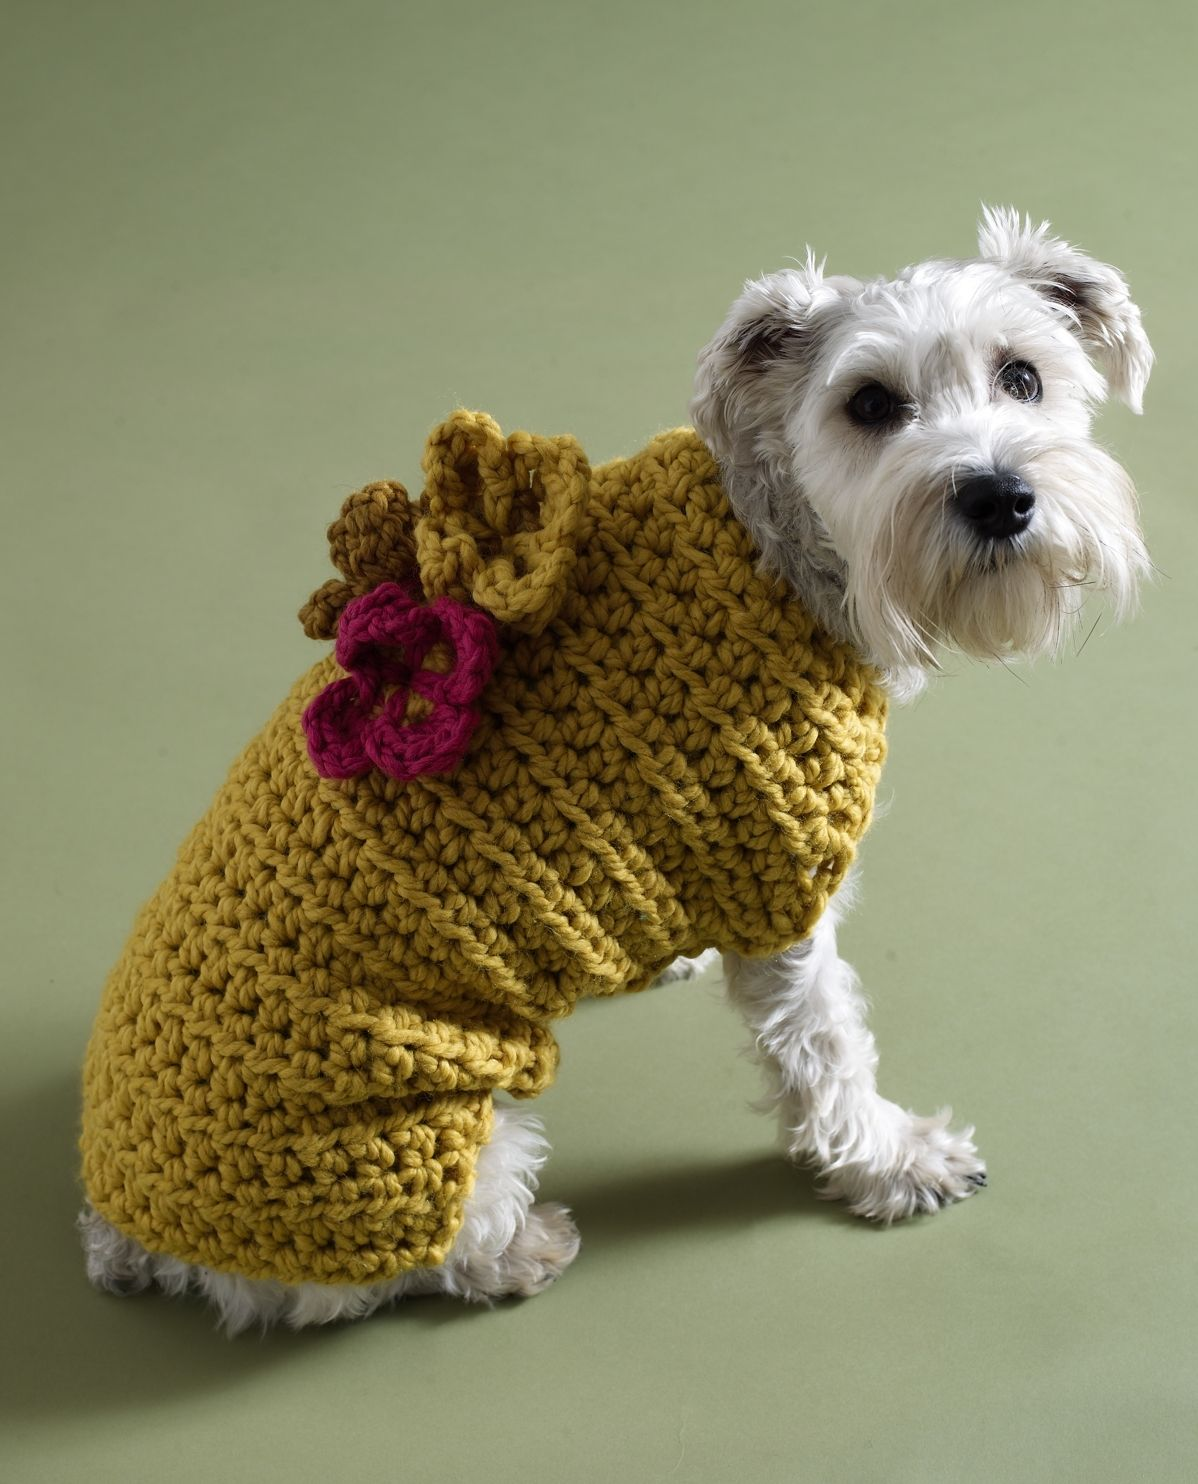 Crochet hat patterns for large dogs crochet pattern crochet crochet hat patterns for large dogs crochet pattern crochet learn how to bankloansurffo Image collections